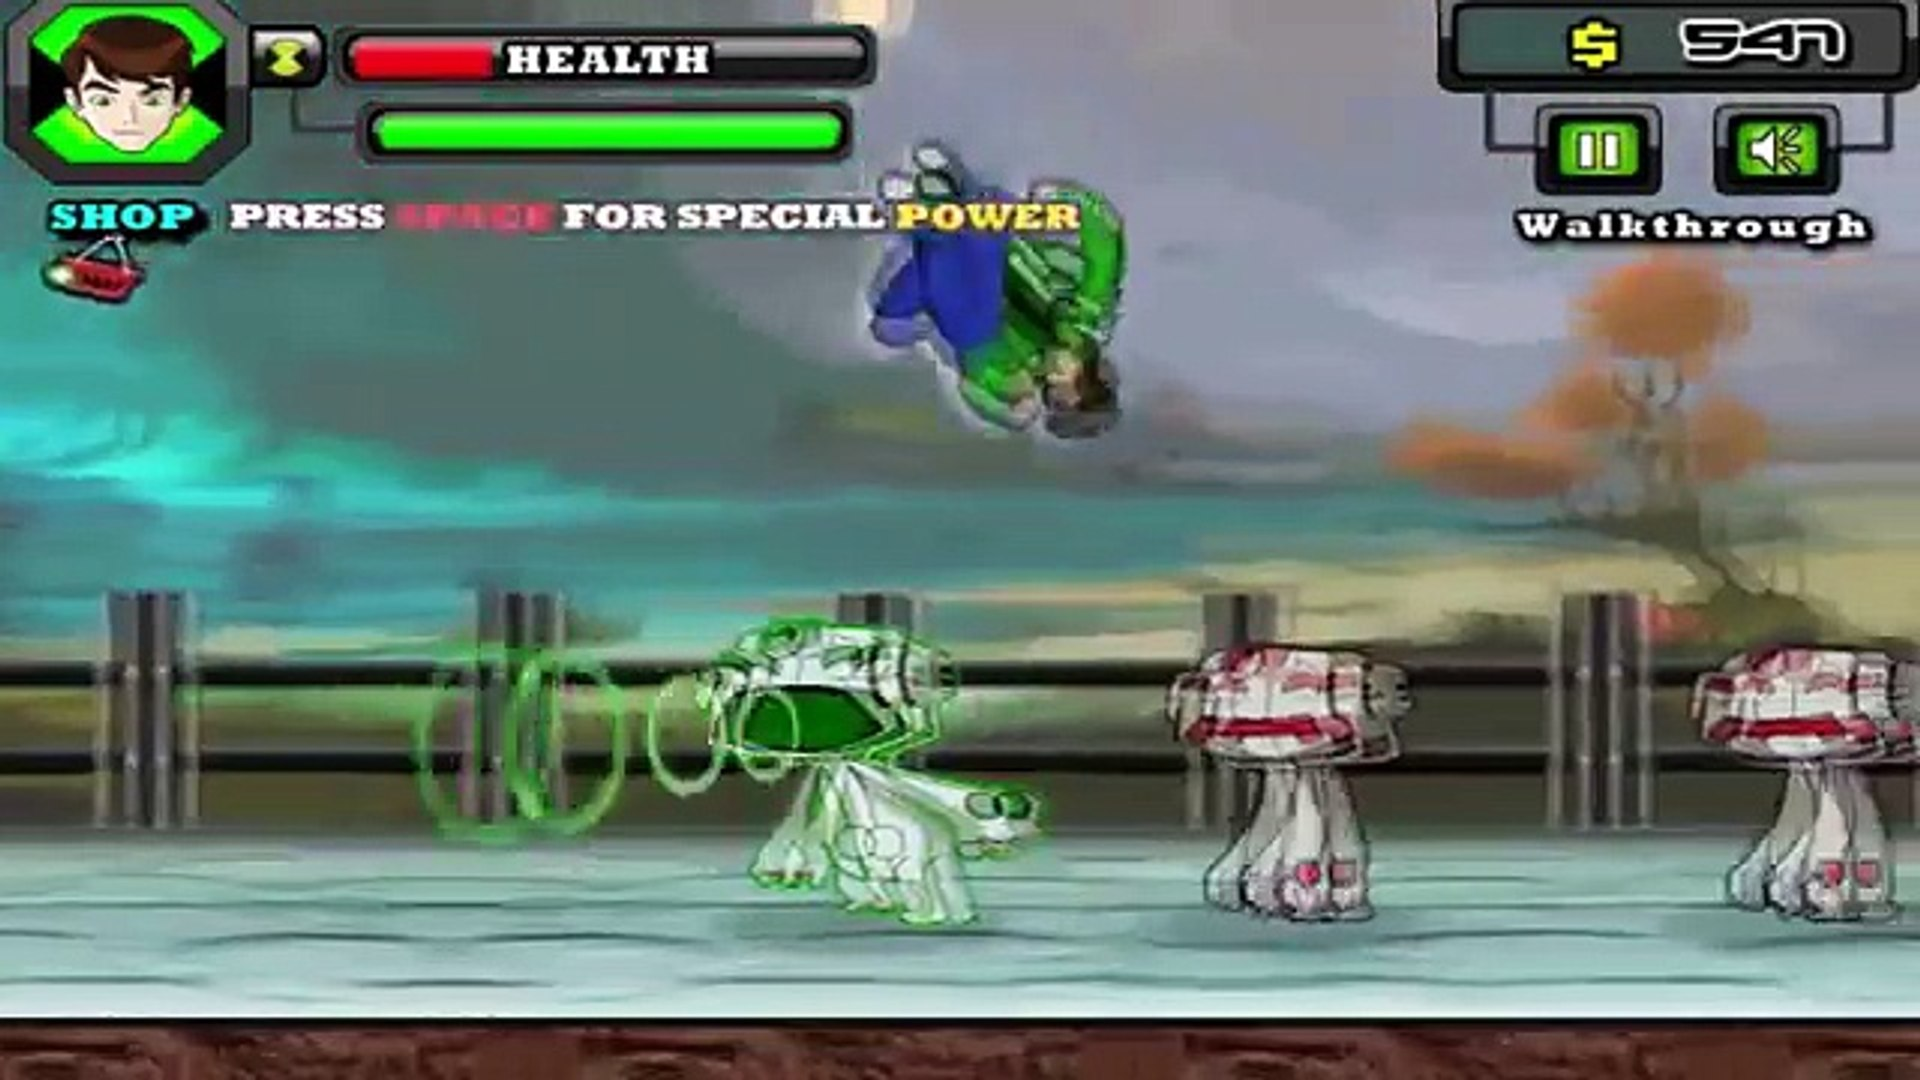 Ben 10: Protector of Earth All Bosses | Final Boss (Wii, PS2, PSP)